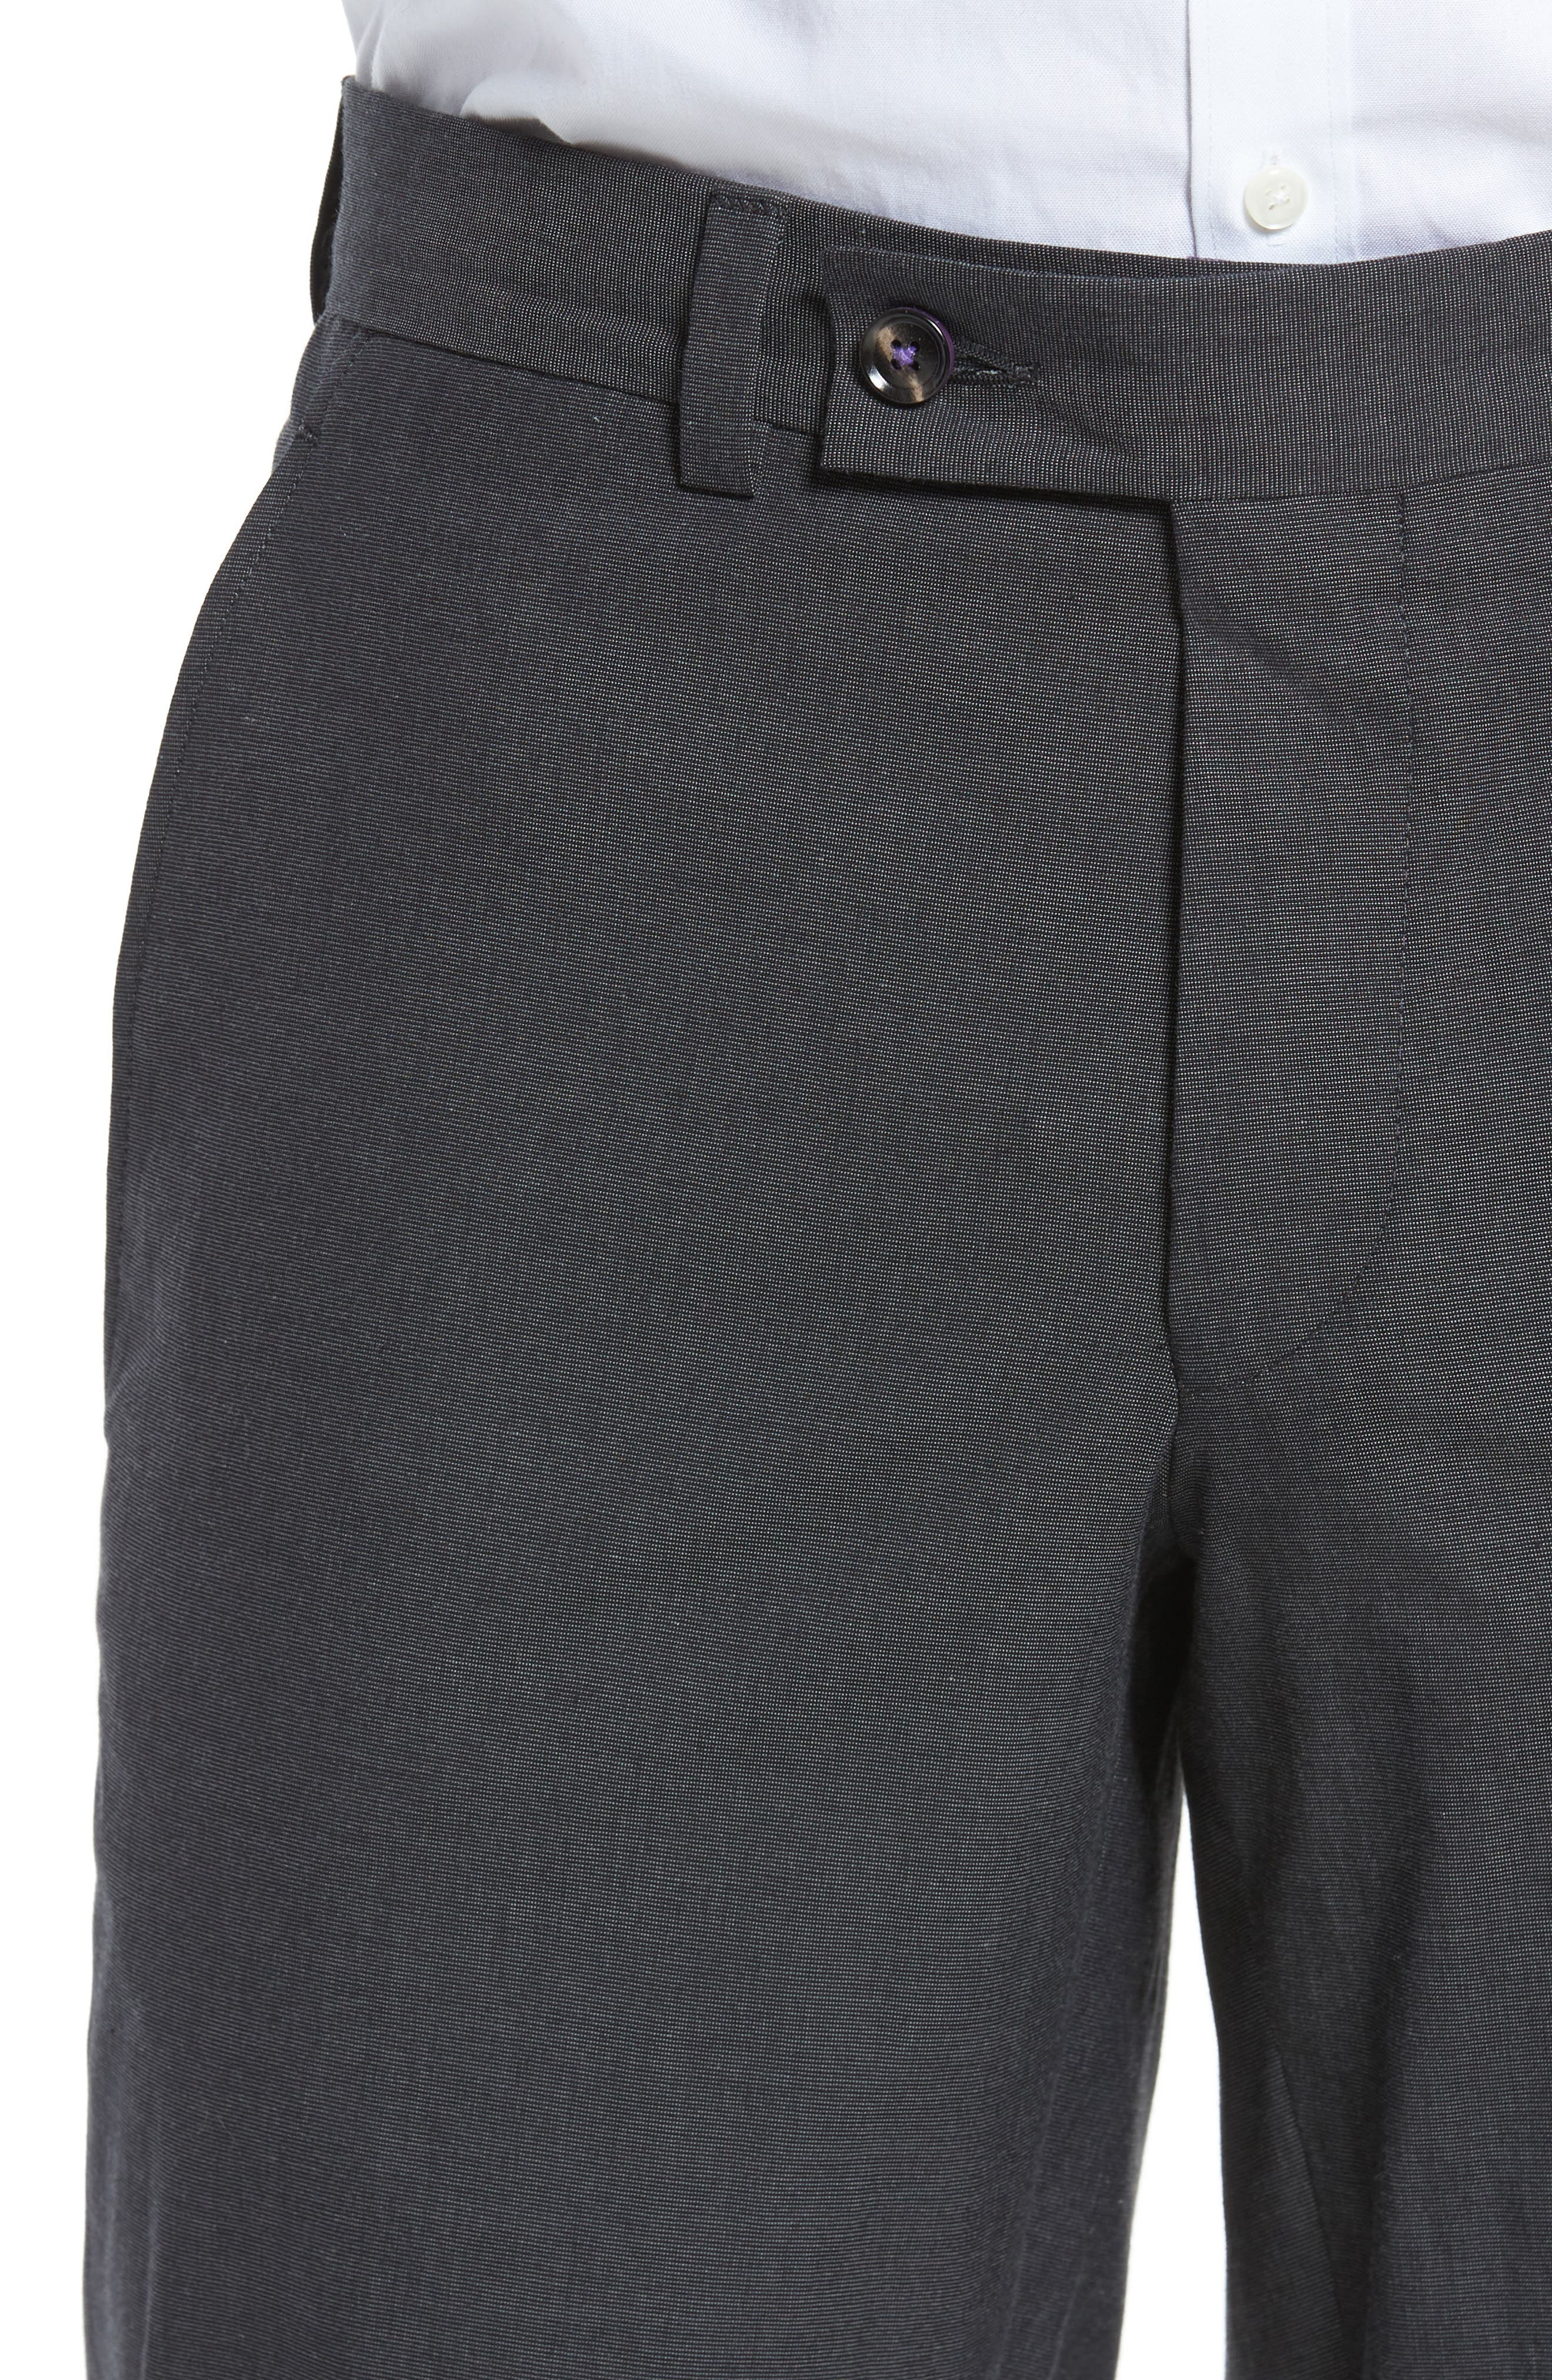 Jerome Flat Front Stretch Solid Cotton Trousers,                             Alternate thumbnail 4, color,                             Charcoal